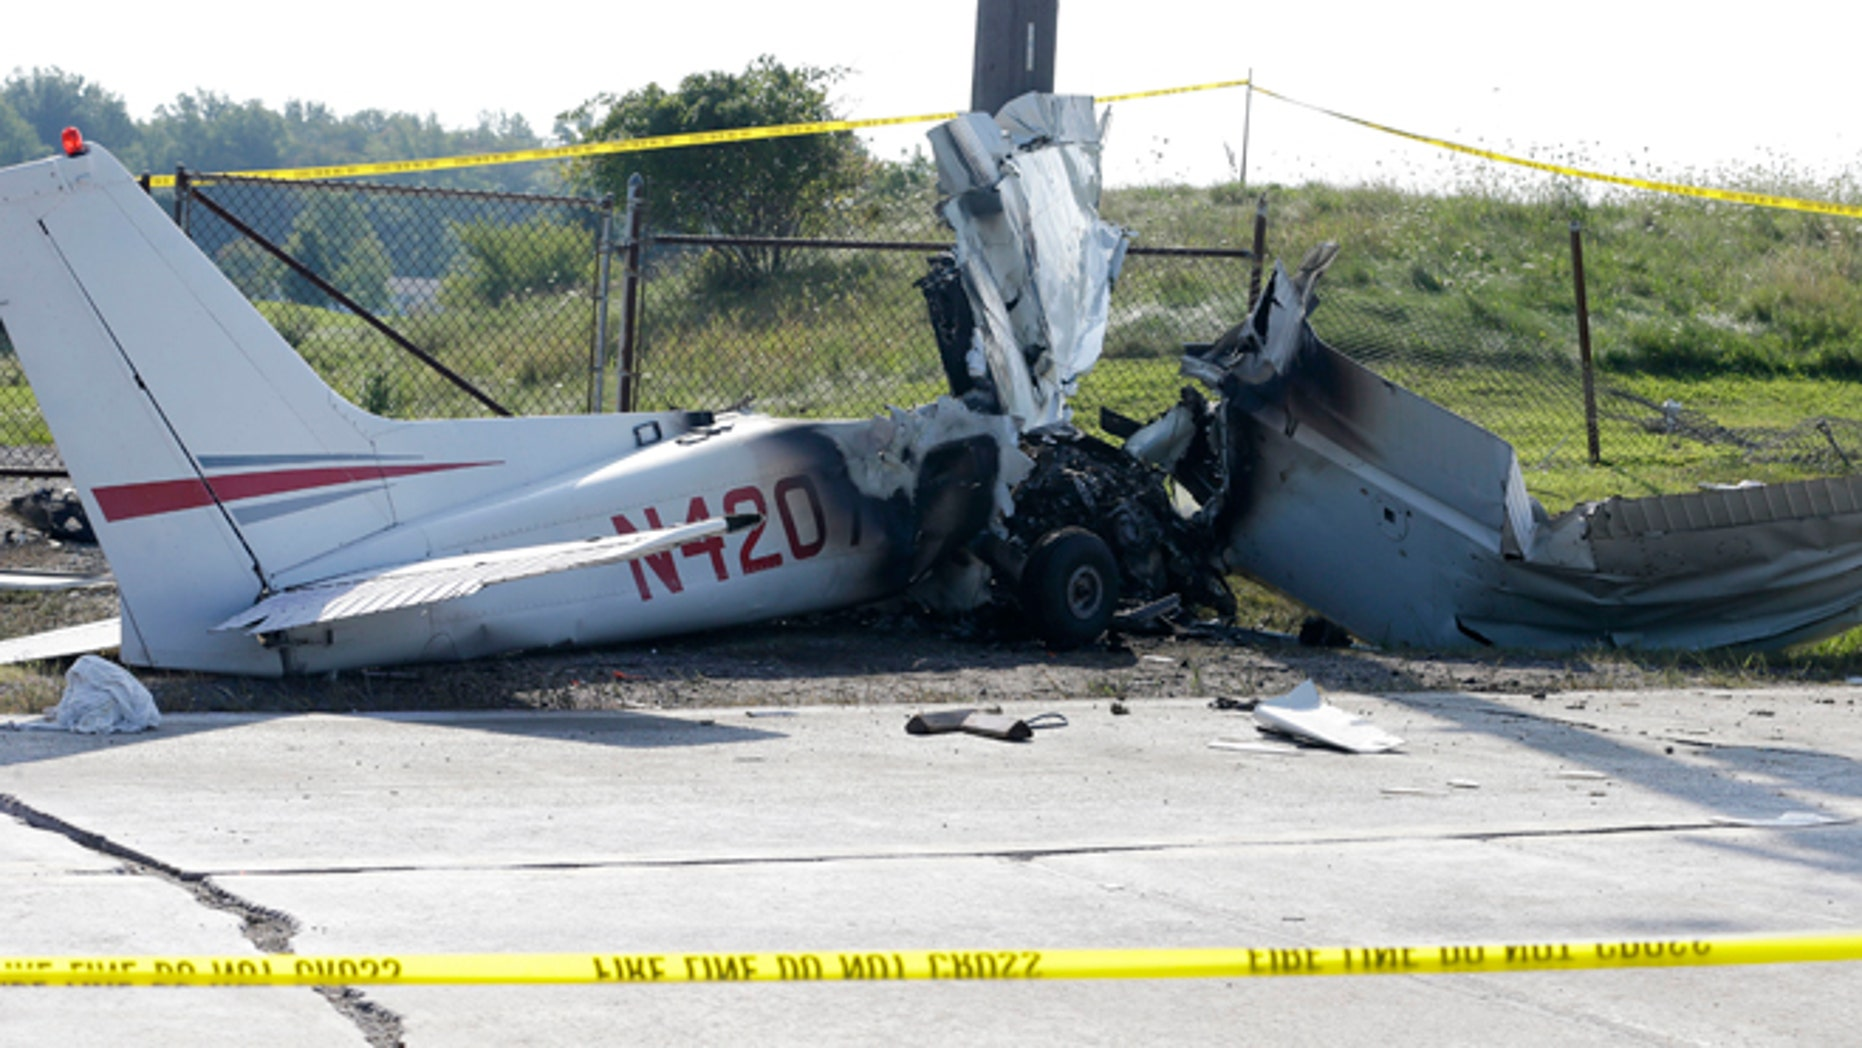 Aug. 26: The wreckage from a plane that crashed rests on the side of a road in Richmond Heights, Ohio.